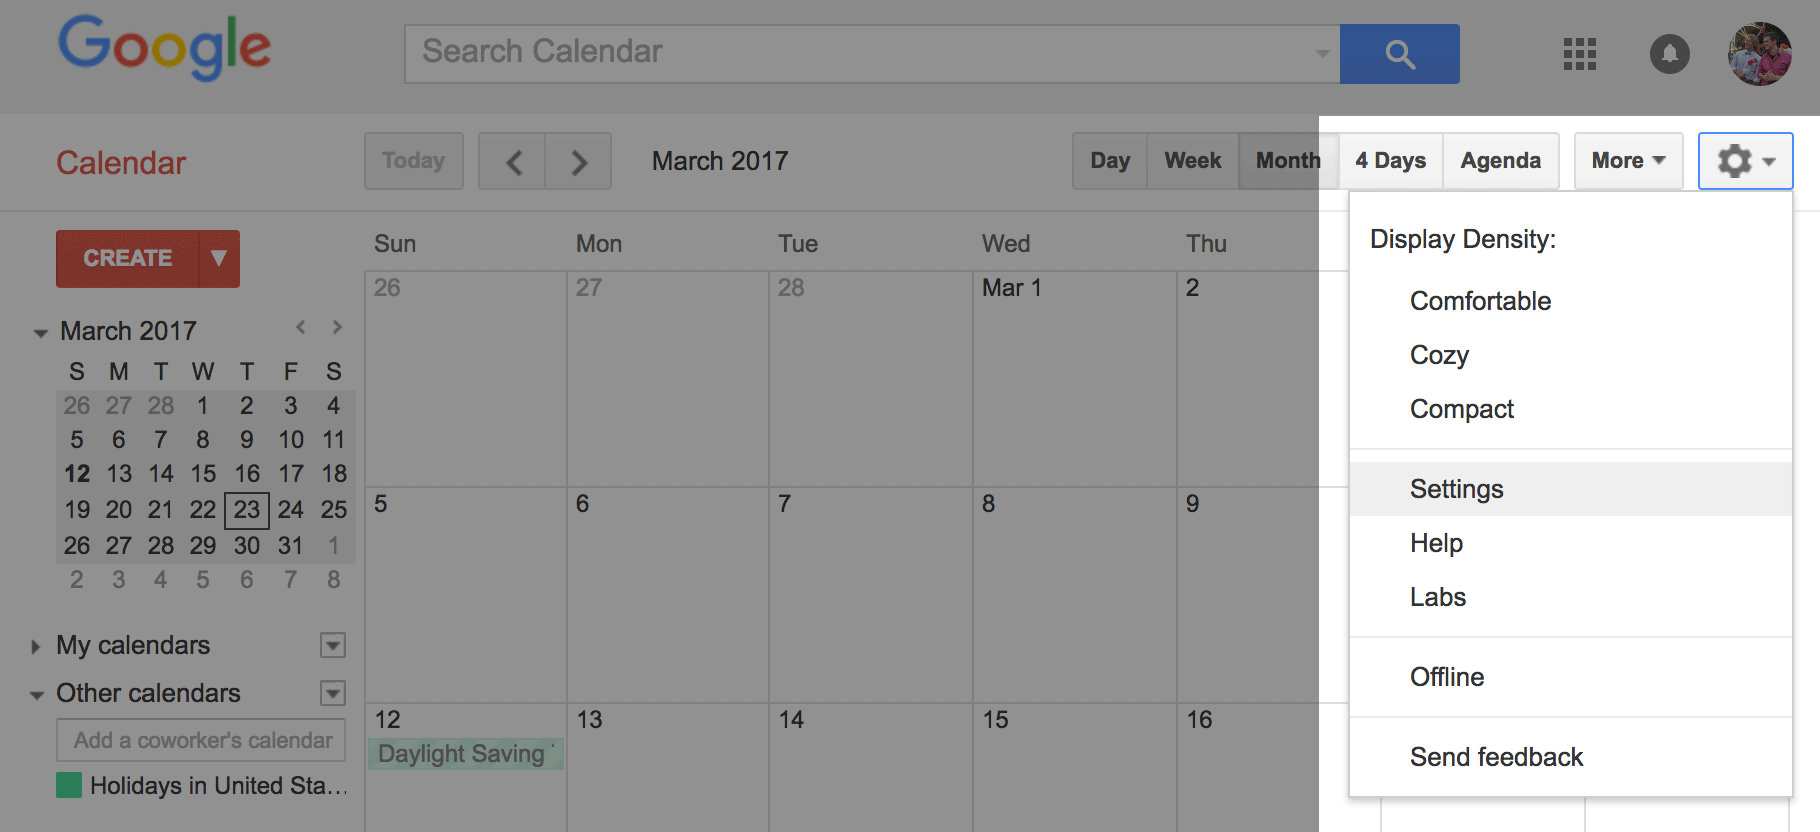 Open the settings of the calendar by clicking the gear icon